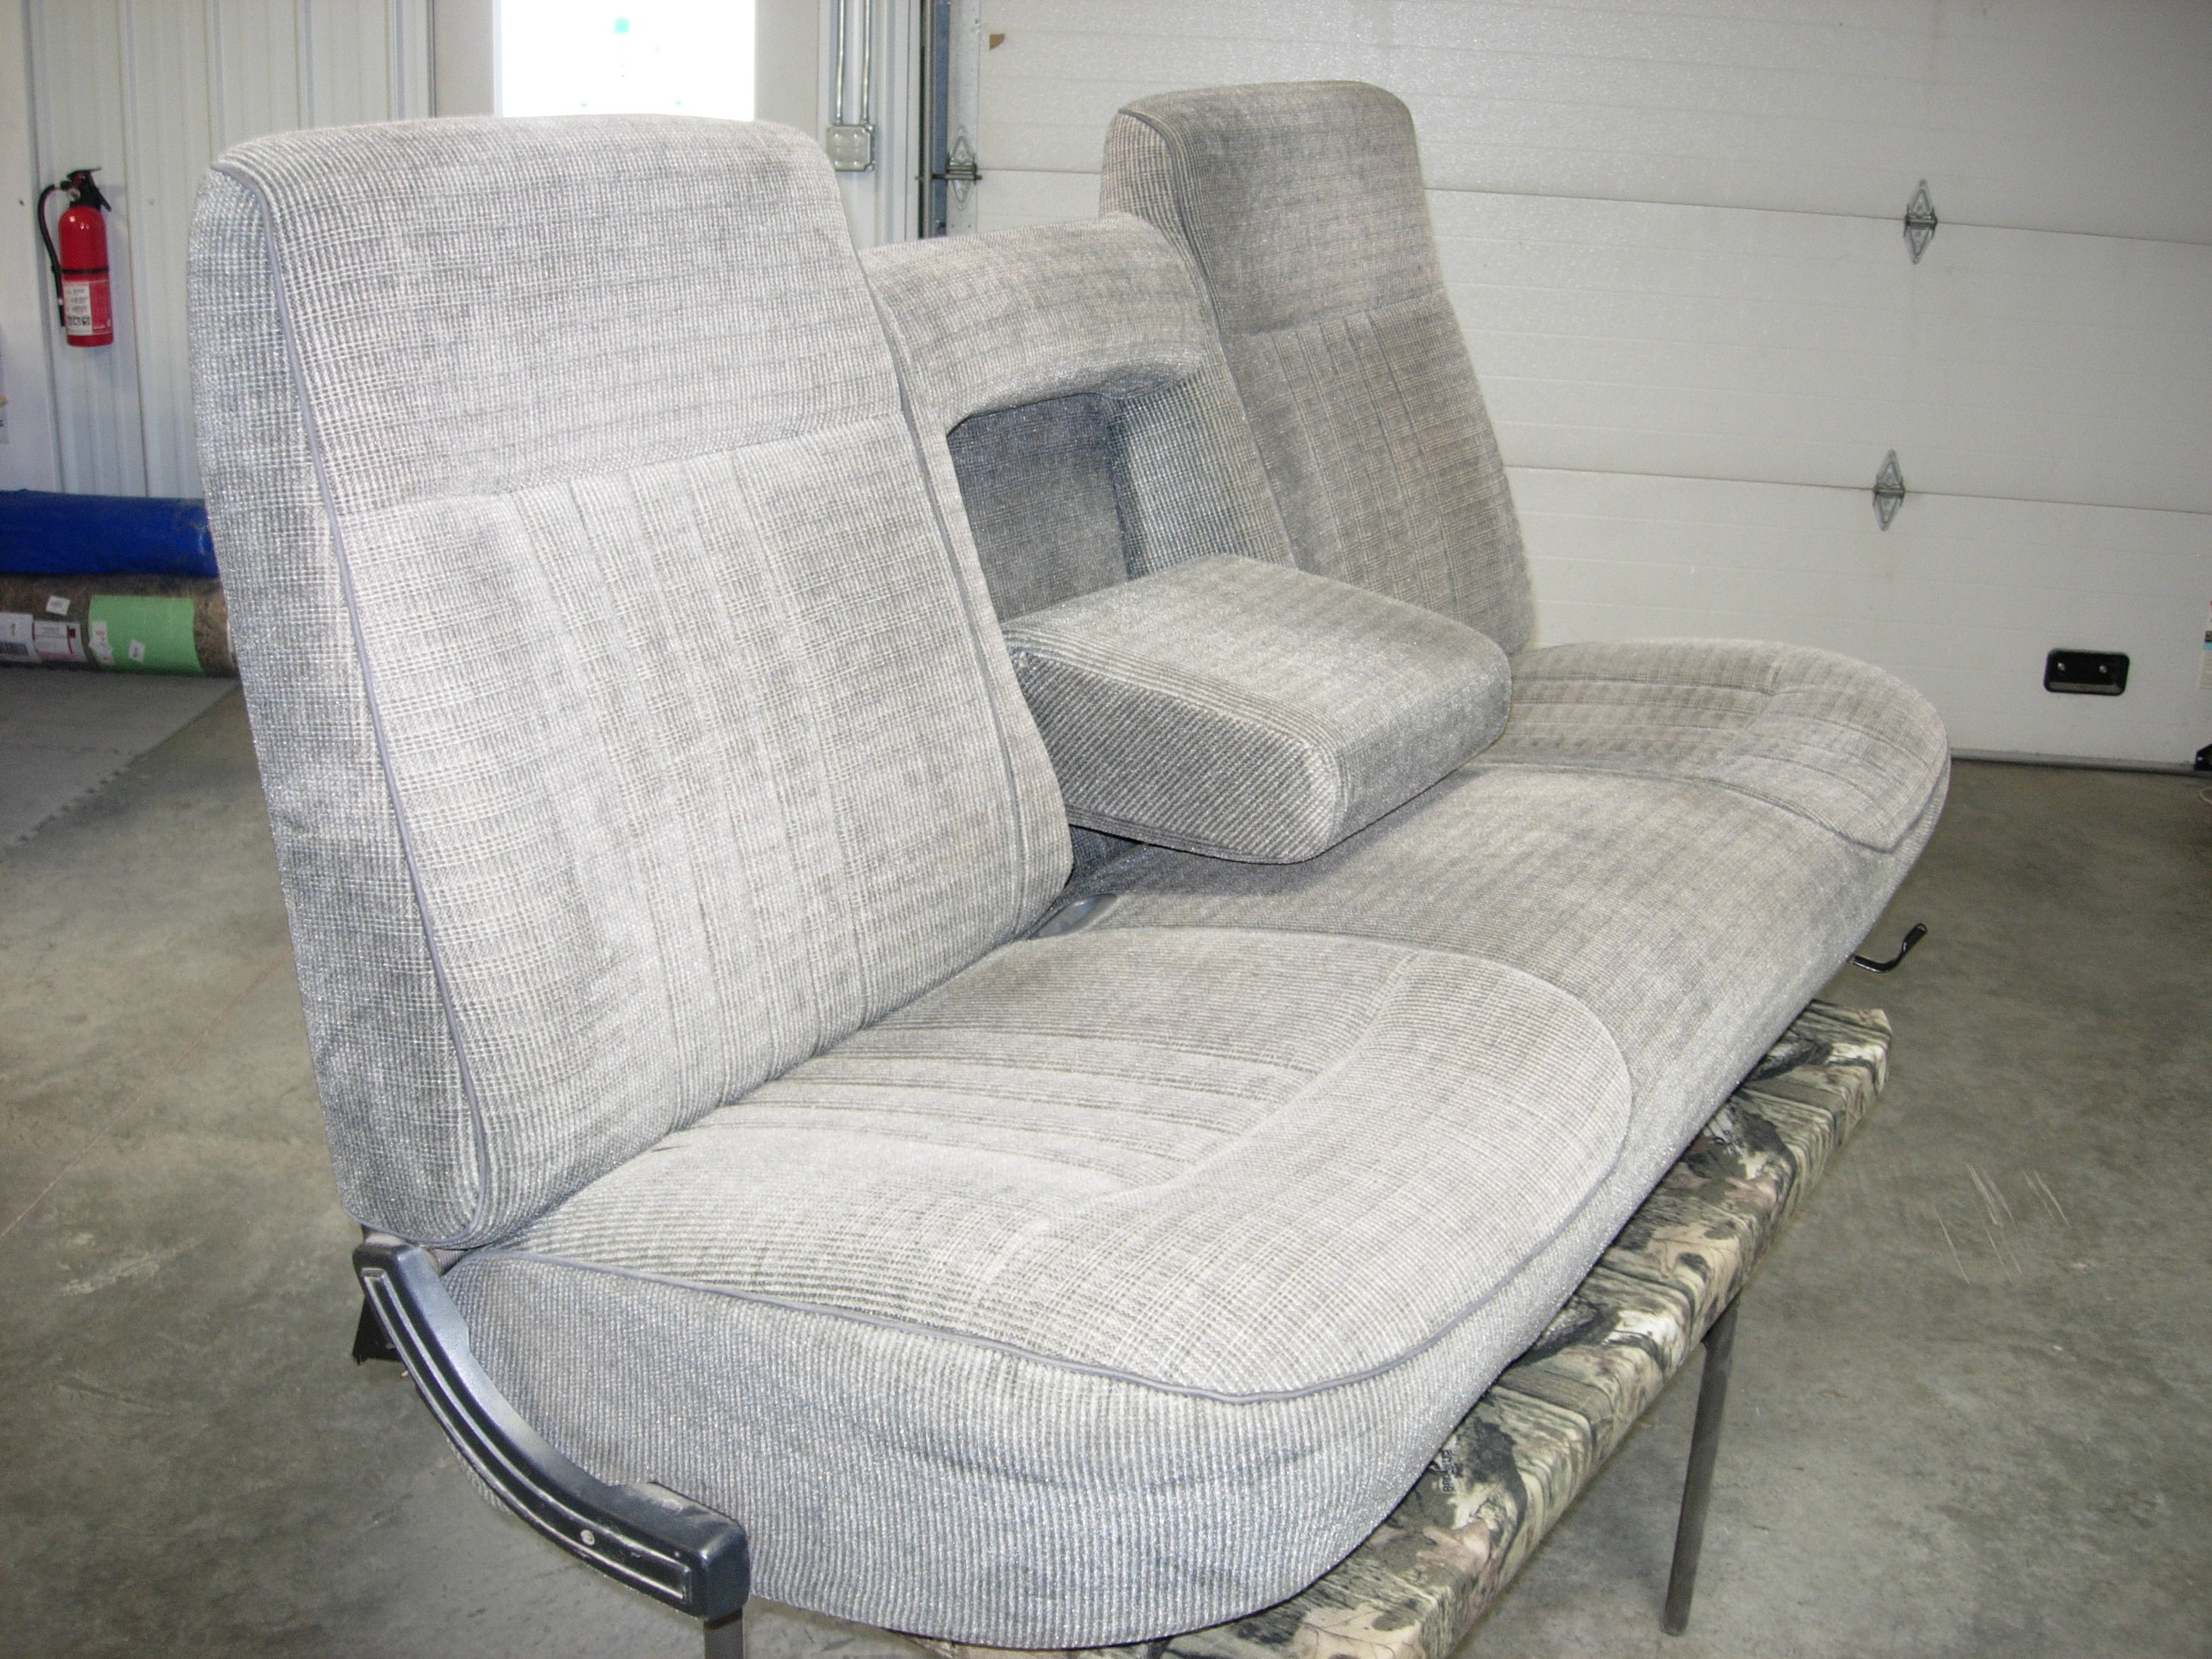 Incredible 1987 1991 Ford F 150 Regular Cab Xlt Bench Seat Covers Machost Co Dining Chair Design Ideas Machostcouk